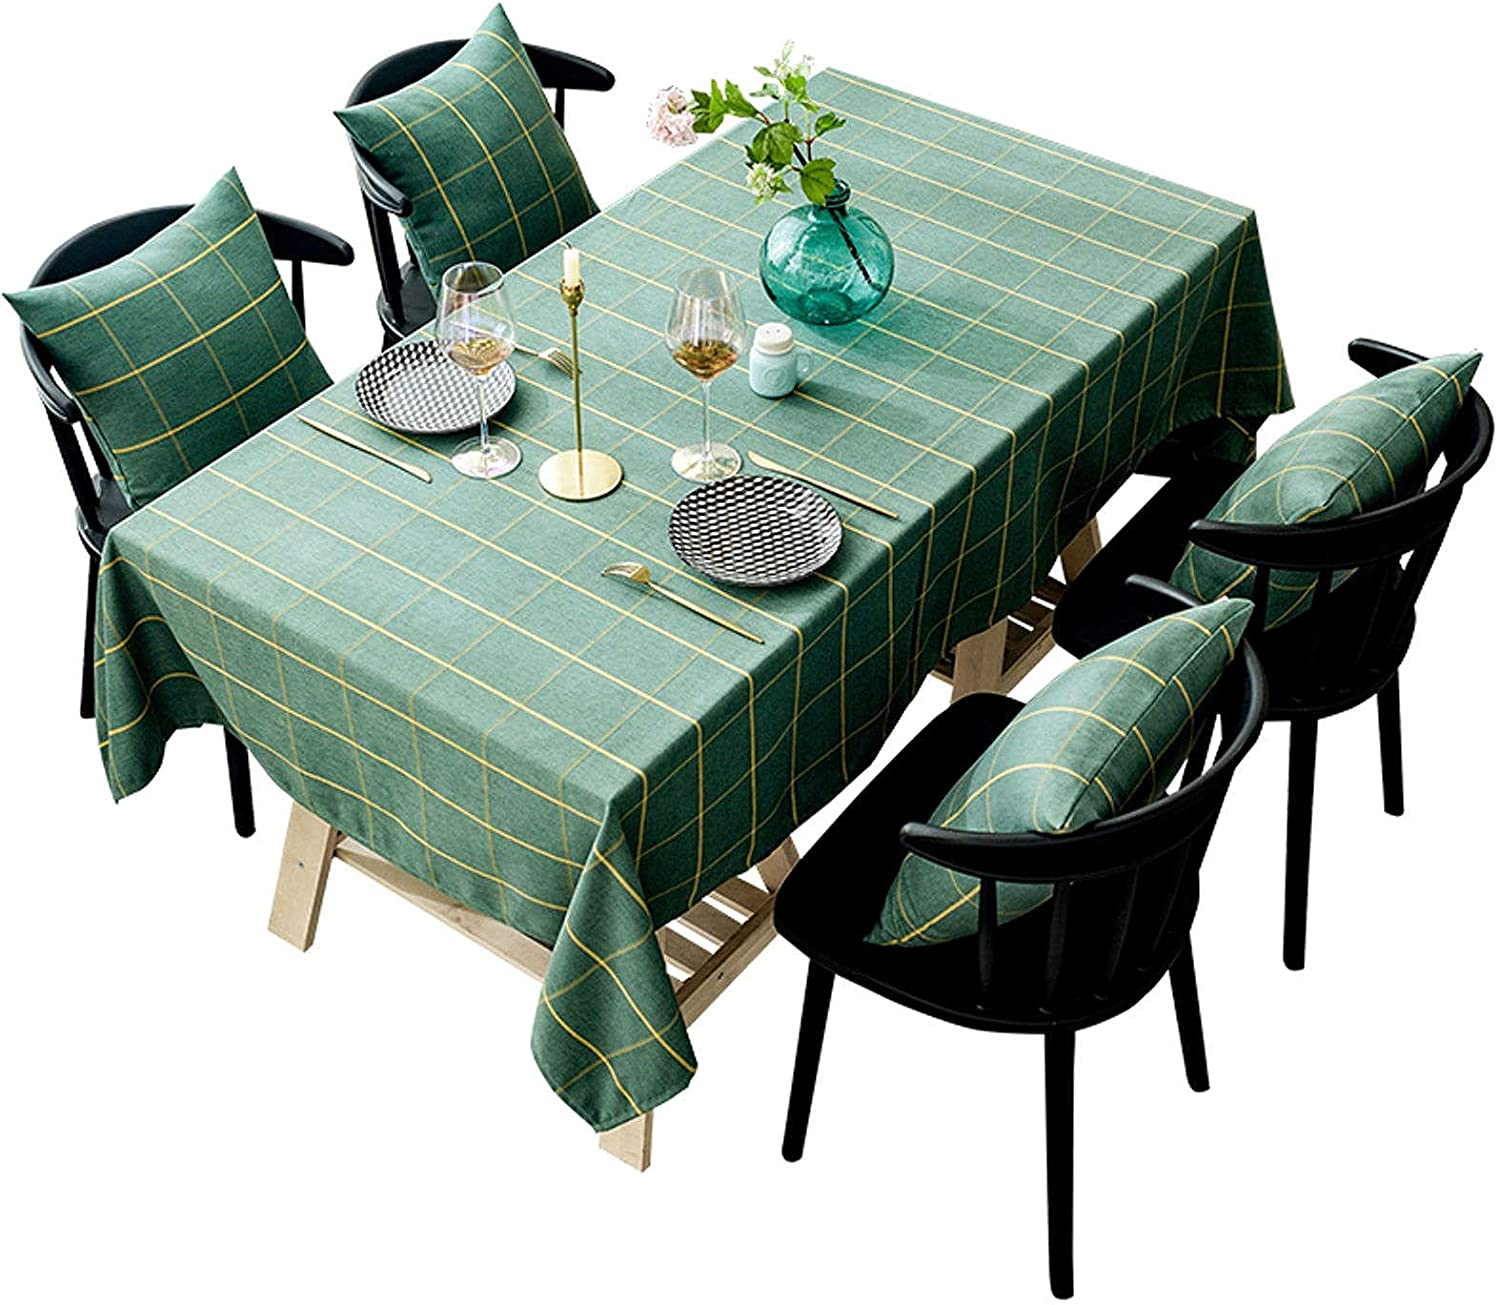 Don't miss the campaign Country Style Gingham Table Cover Linen Rectangle High order Cotton Simple